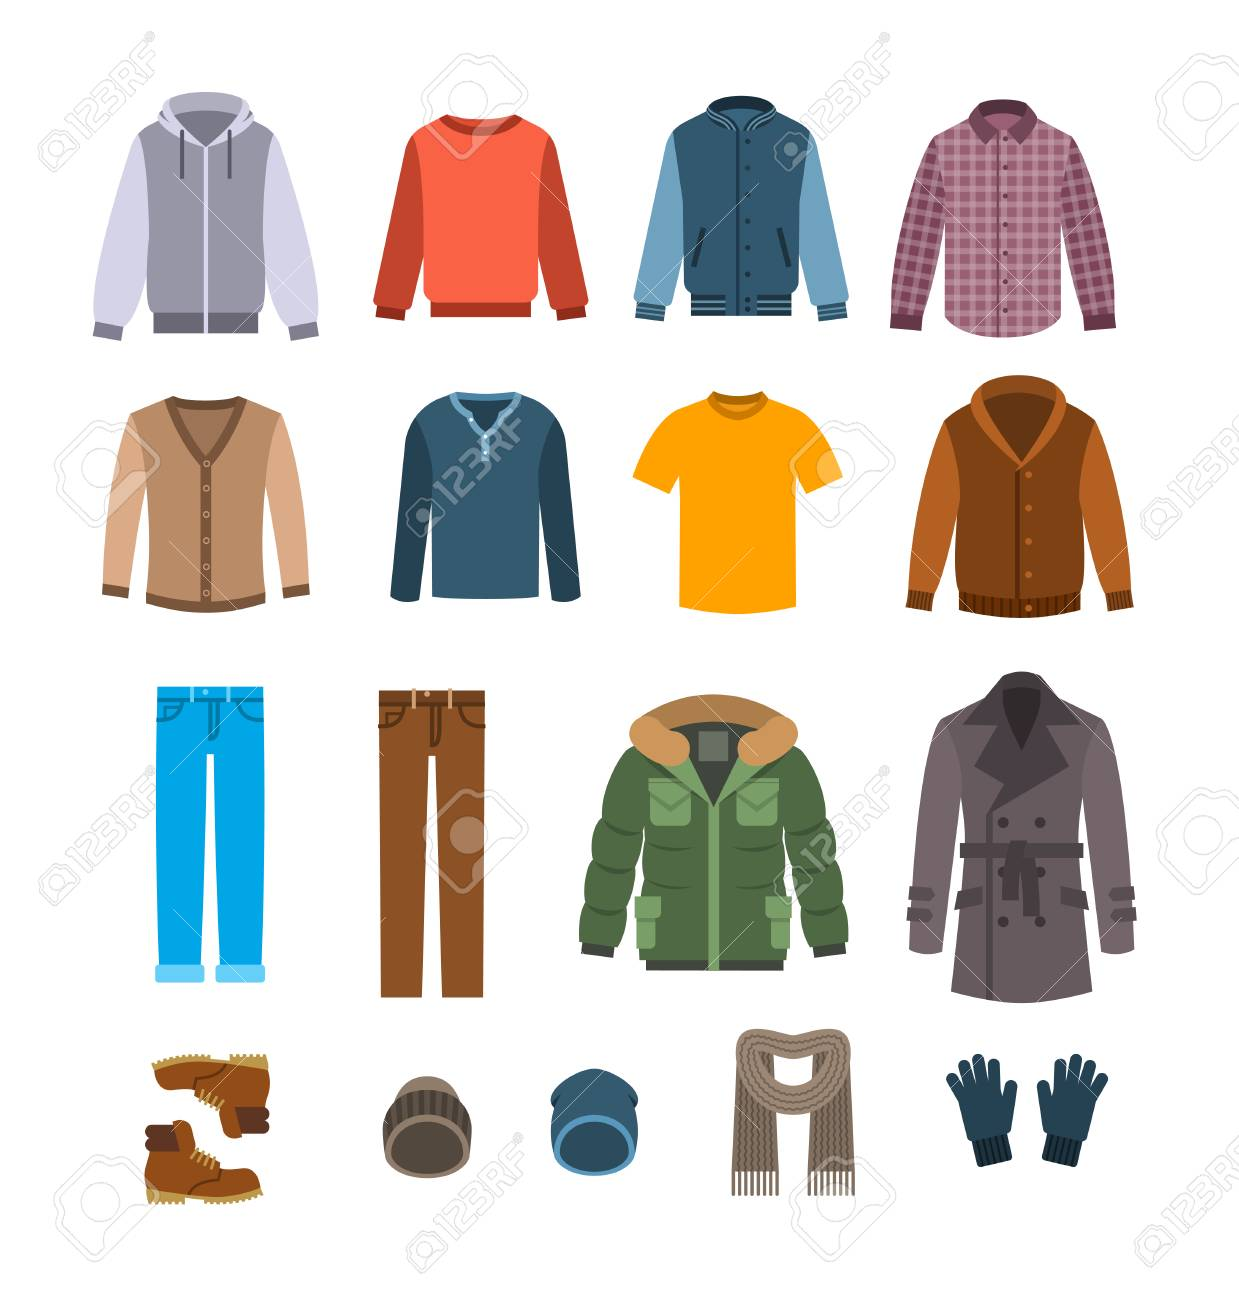 Warm clothes for men. Winter collection of modern male casual outfit. Vector flat illustration. Fashion style icons. Cold season garments. Wardrobe graphic elements - 91216966